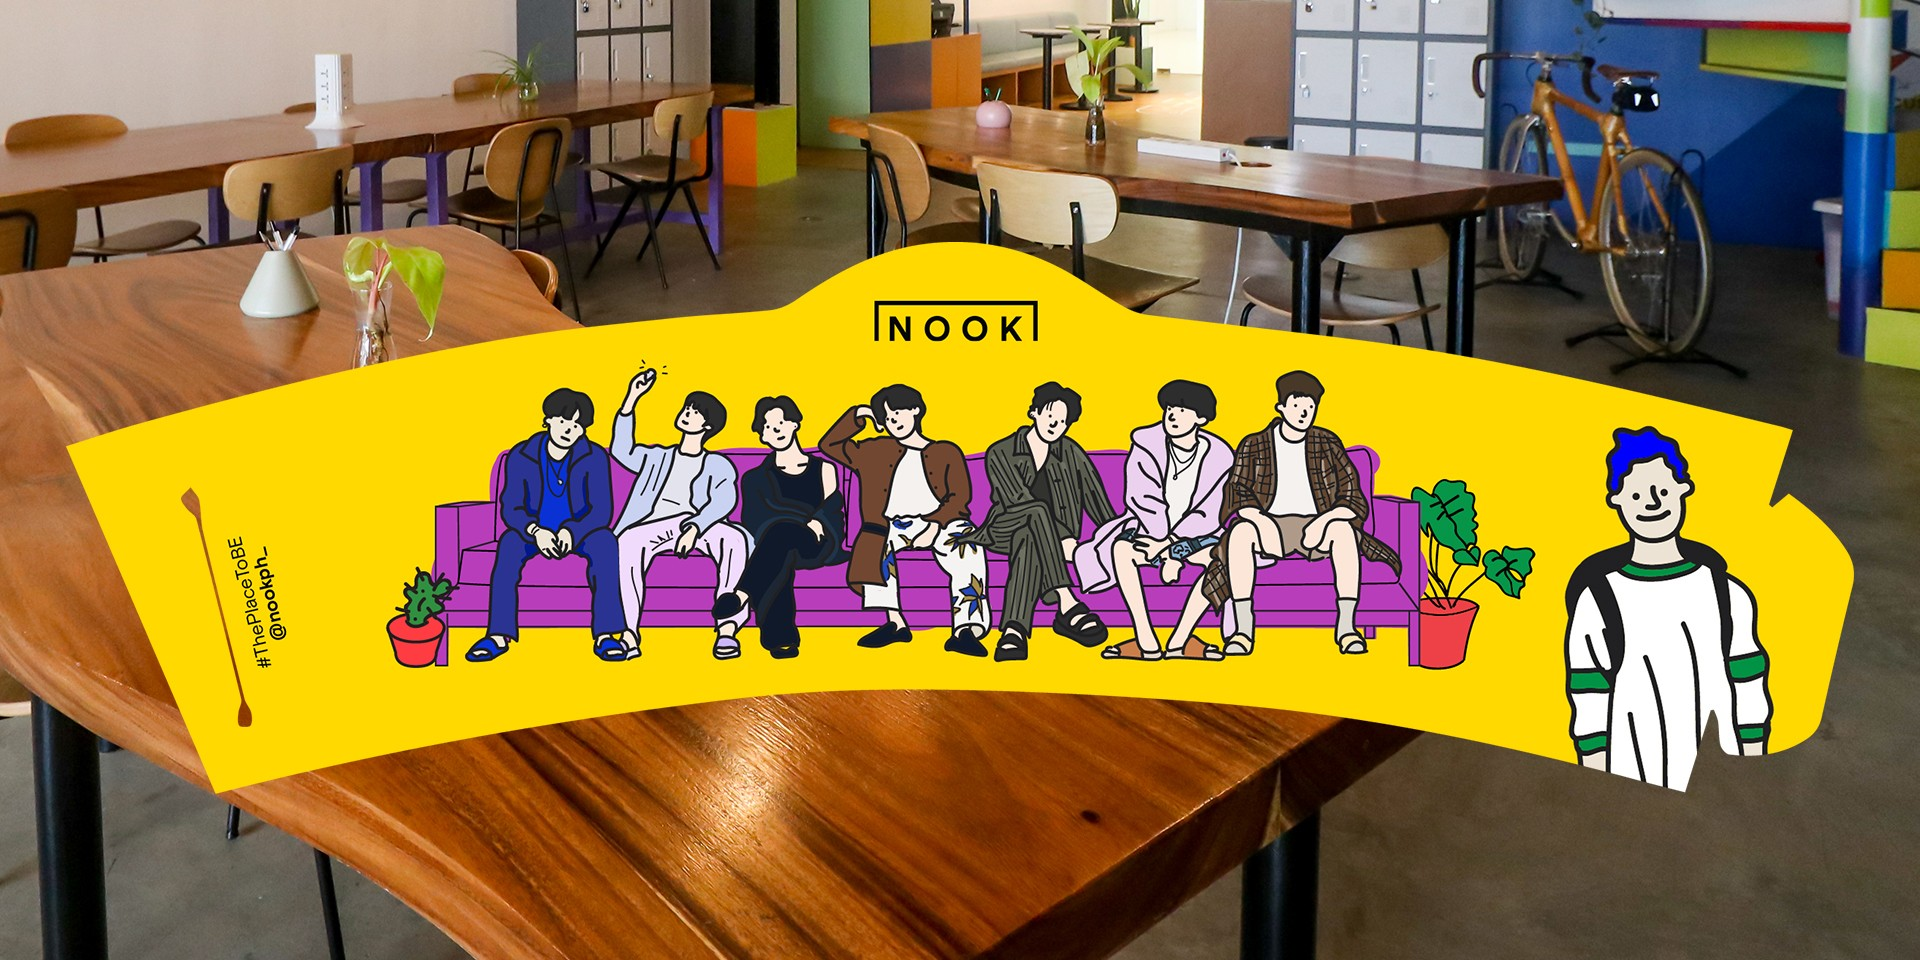 NOOK Coworking Studio is throwing a listening party for BTS' new album, BE